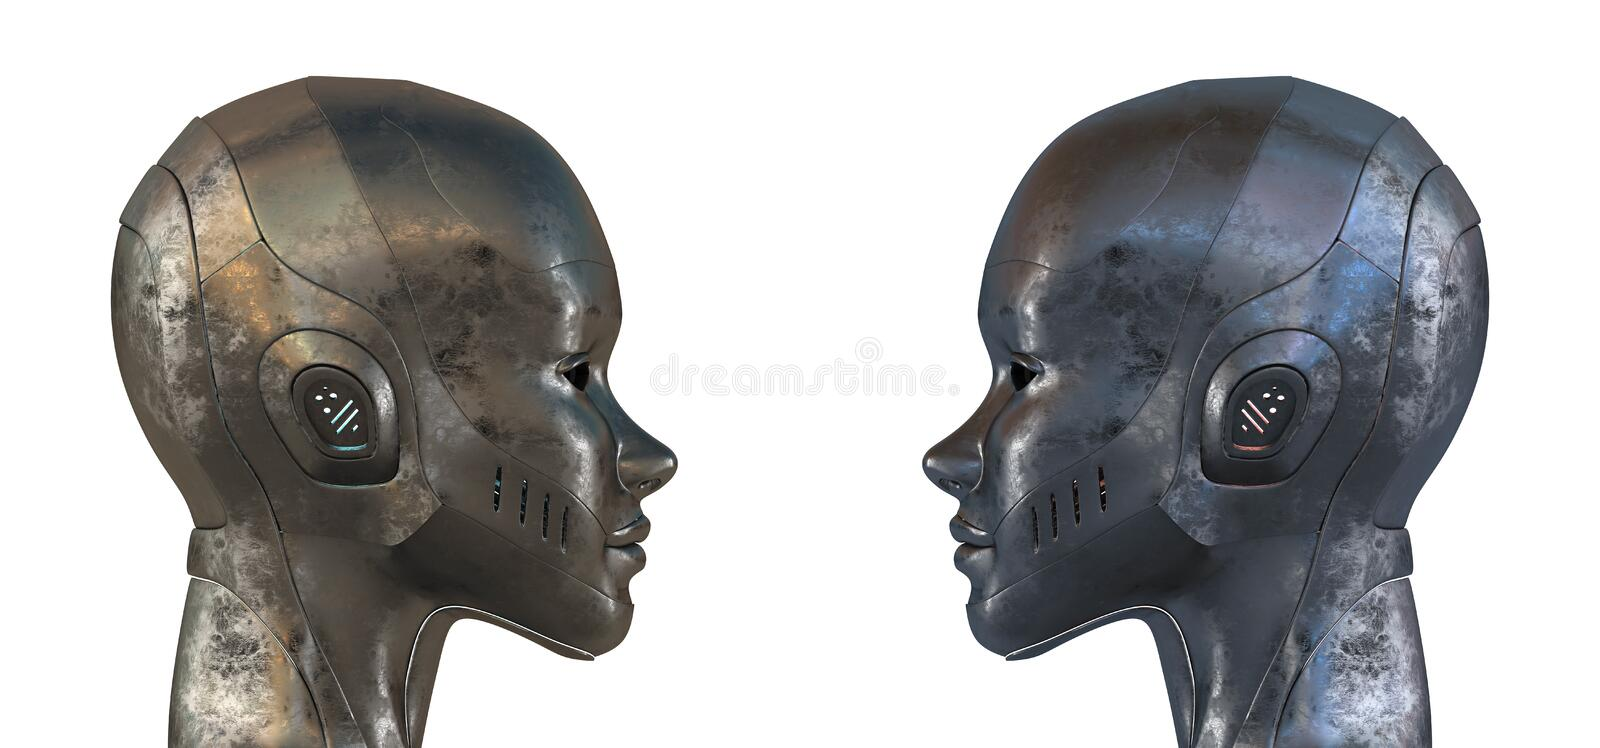 Two Equal Steel Robots In Profile Royalty Free Stock Images